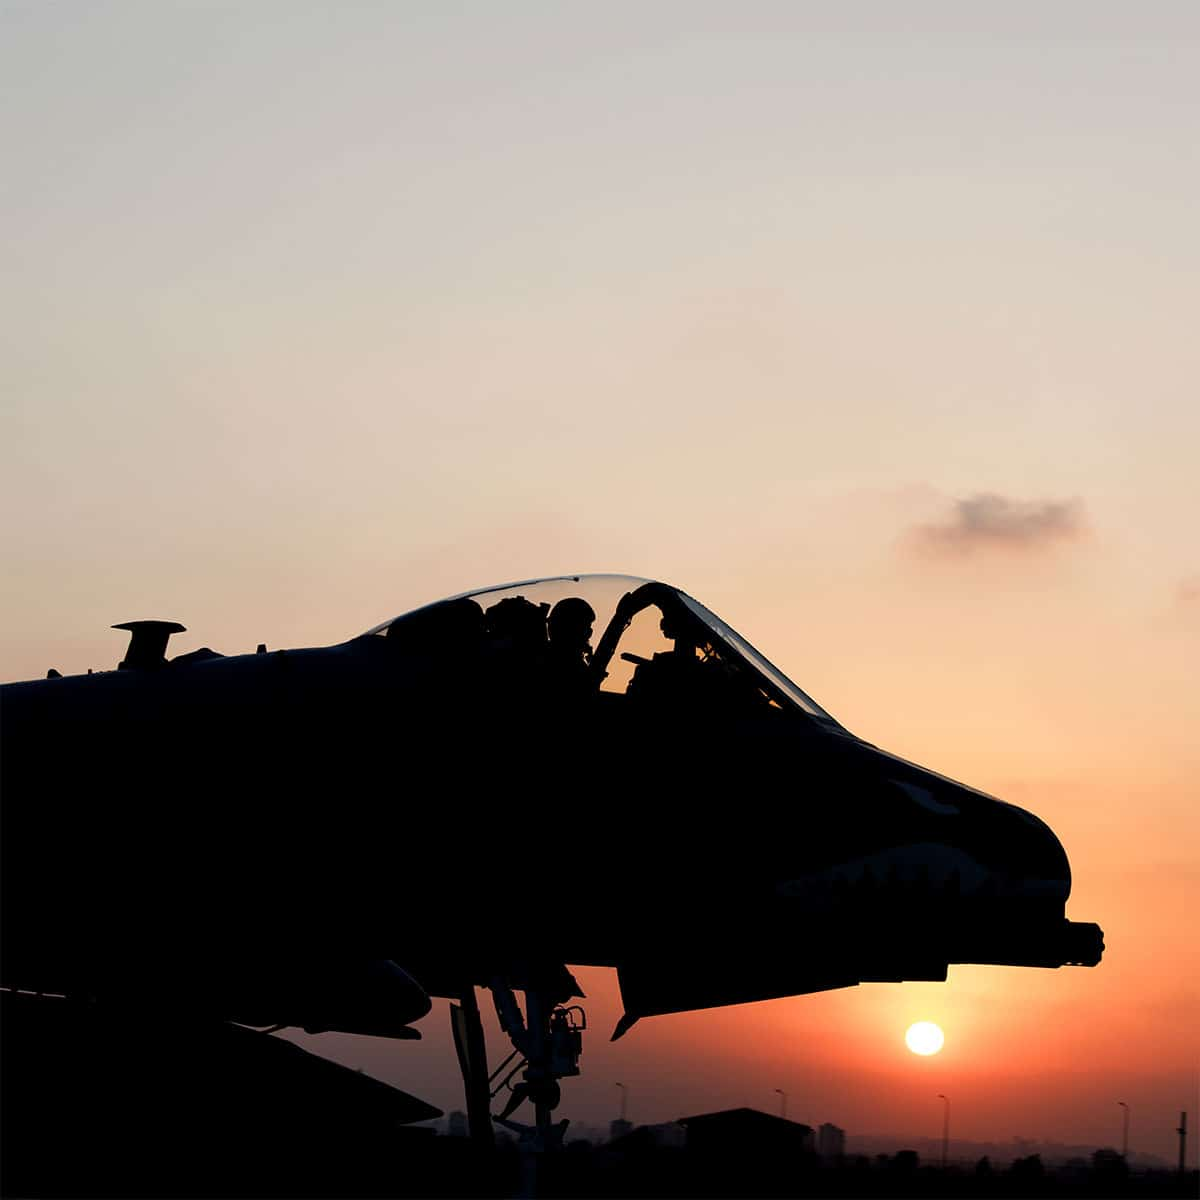 The A10s are deployed here from the 74th Fighter Squadron, Moody Air Force Base, Georgia, in support of Operation Inherent Resolve. A-10s employ a wide variety of conventional munitions in the fight against the Islamic State of Iraq and Syria.